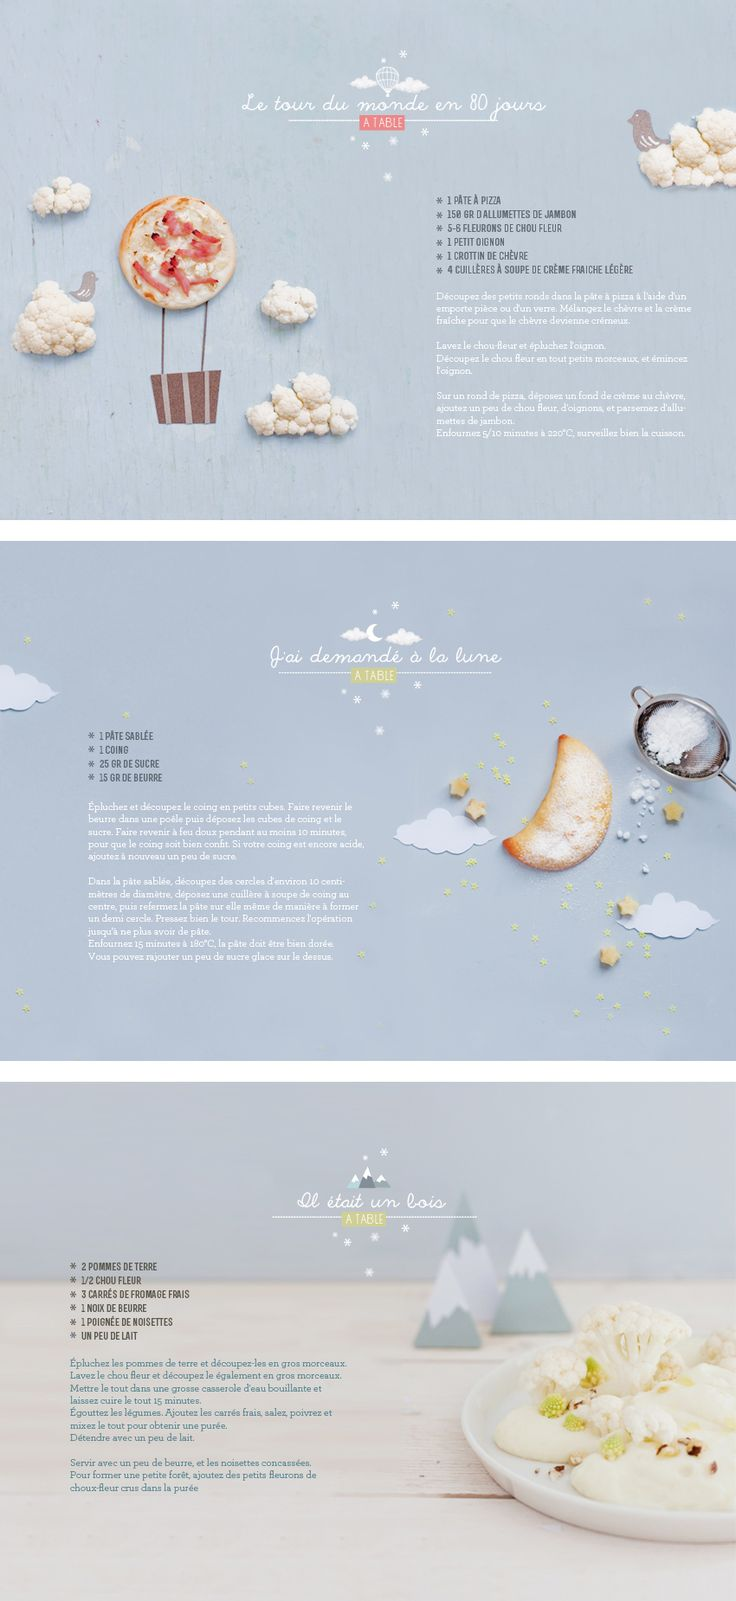 #graphic #design #editorial #food #story #photography #idea #cleaver Histoires gourmandes pour enfants sages